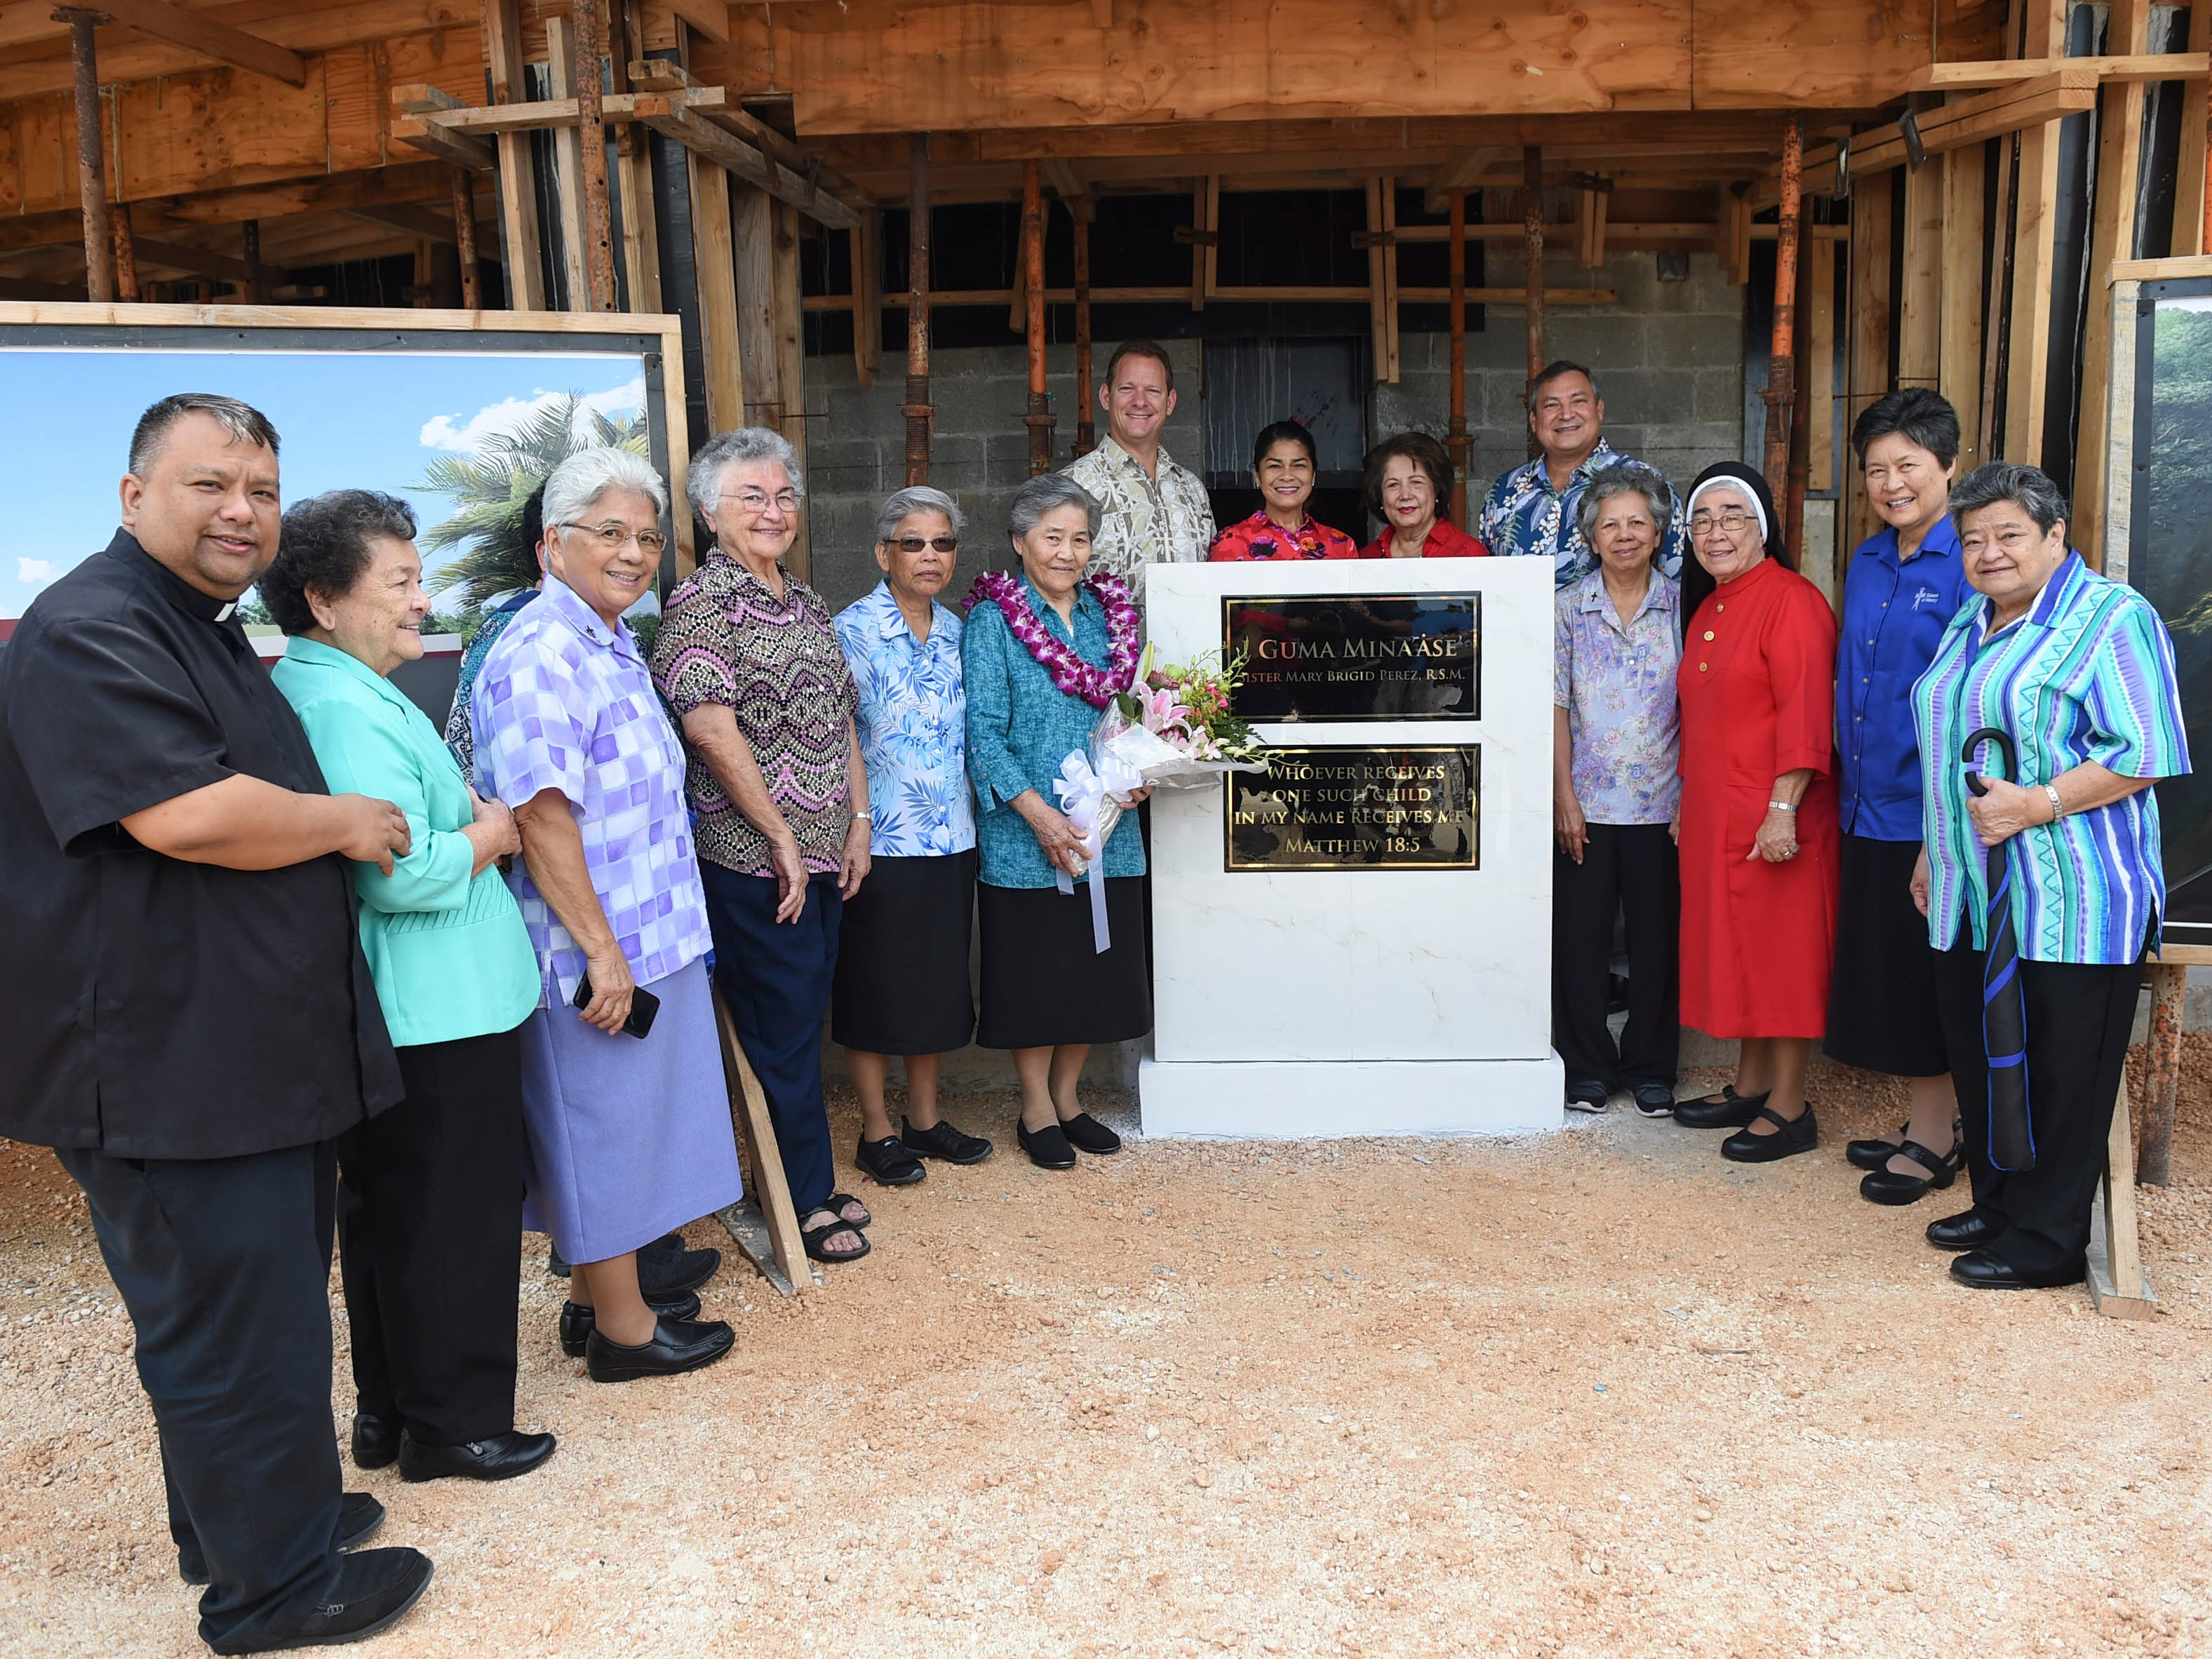 A ceremony recognizing the redesignation of the former Rigålu House to I Guma Mina'åse' Sister Mary Brigid Perez, R.S.M. is held in Barrigada on Dec. 31, 2018.